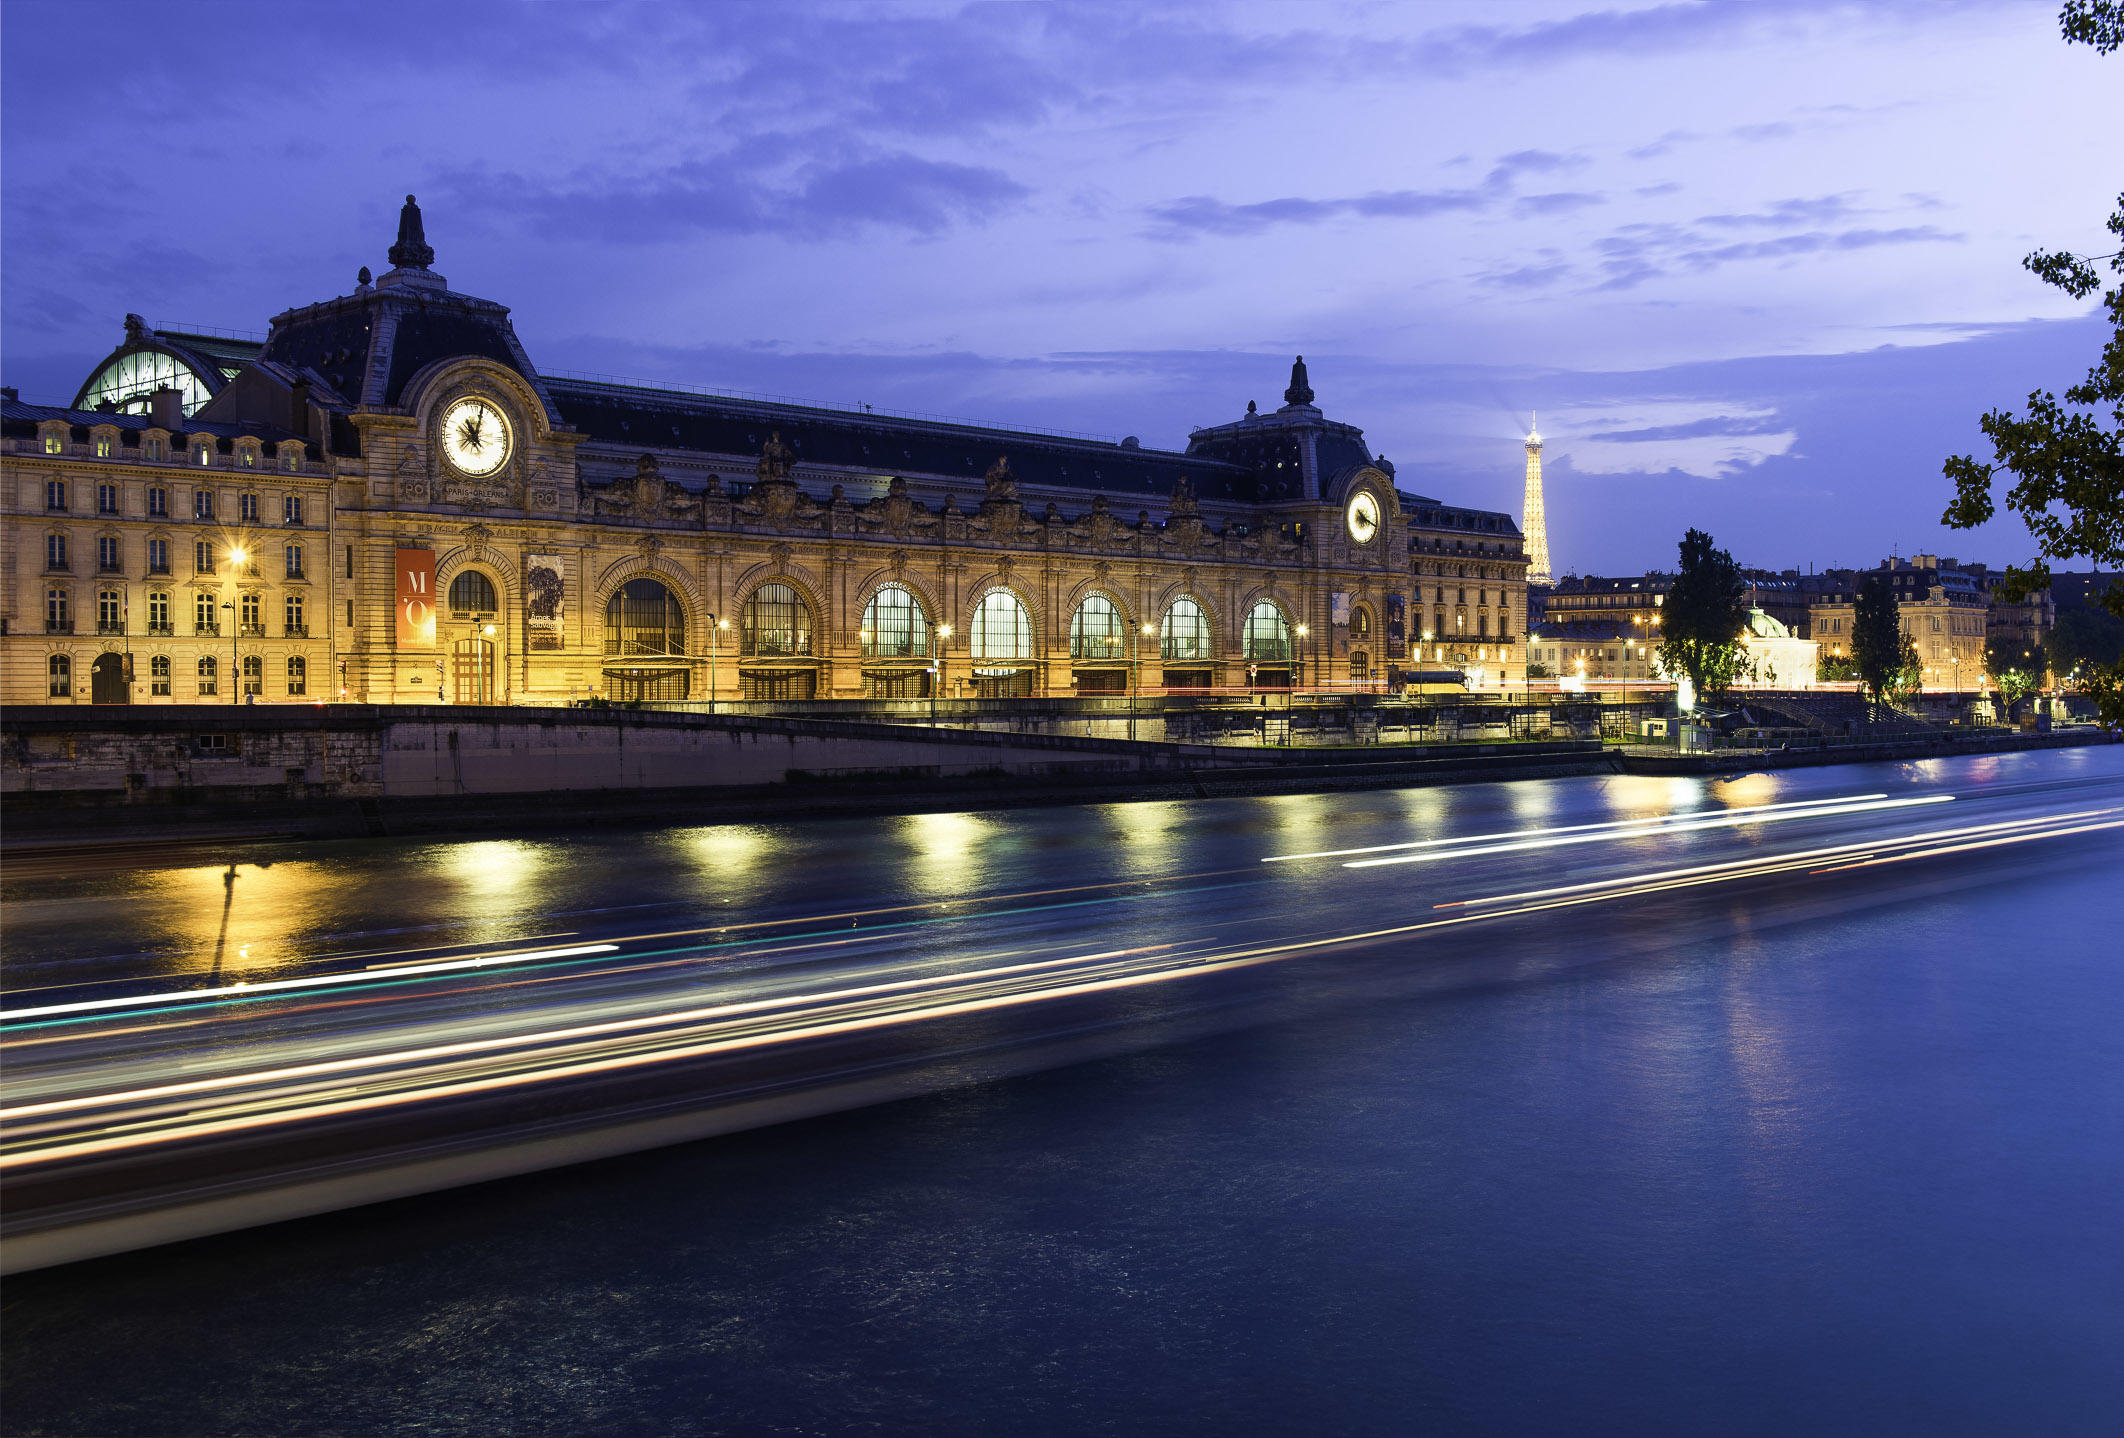 Twilight at the Musée d'Orsay, Paris, France